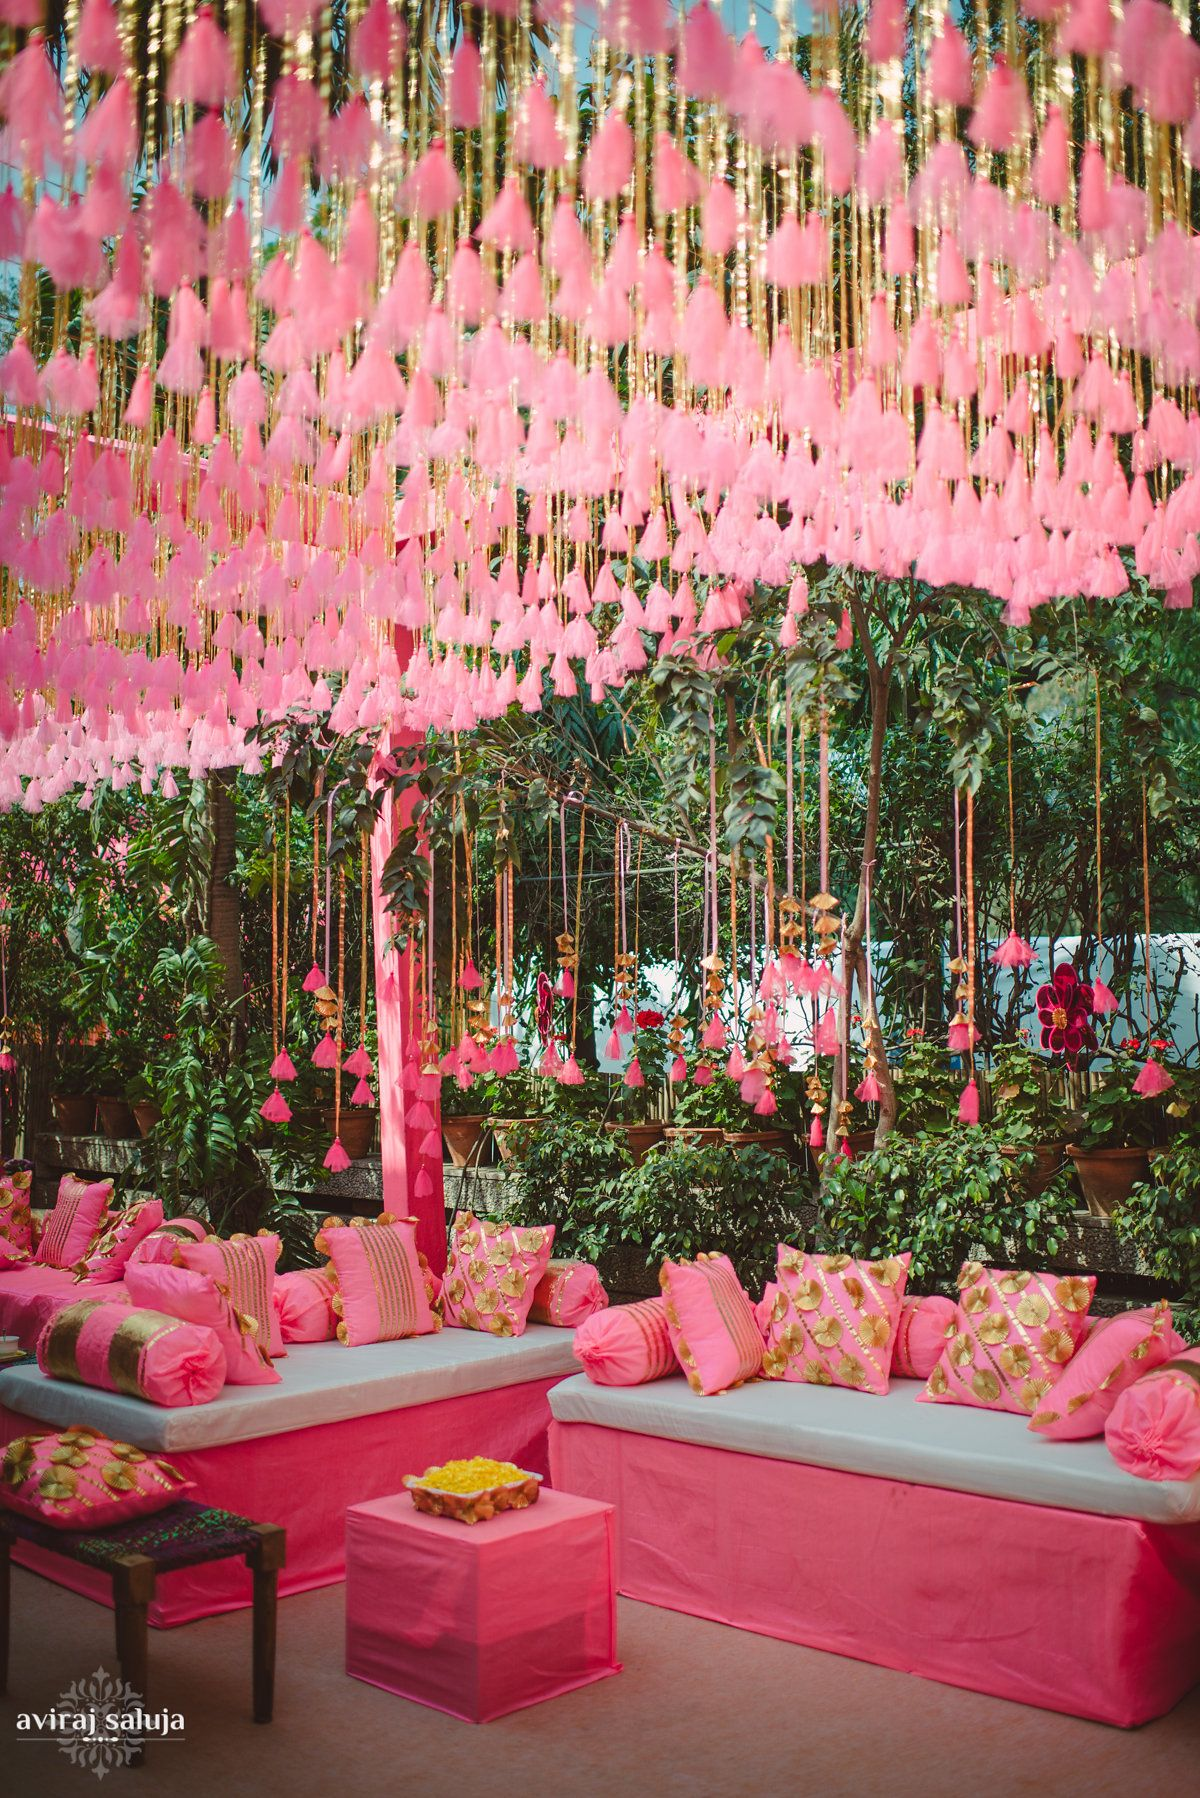 Chic Wedding in Delhi with Exquisite Decor! | wedding decor ...